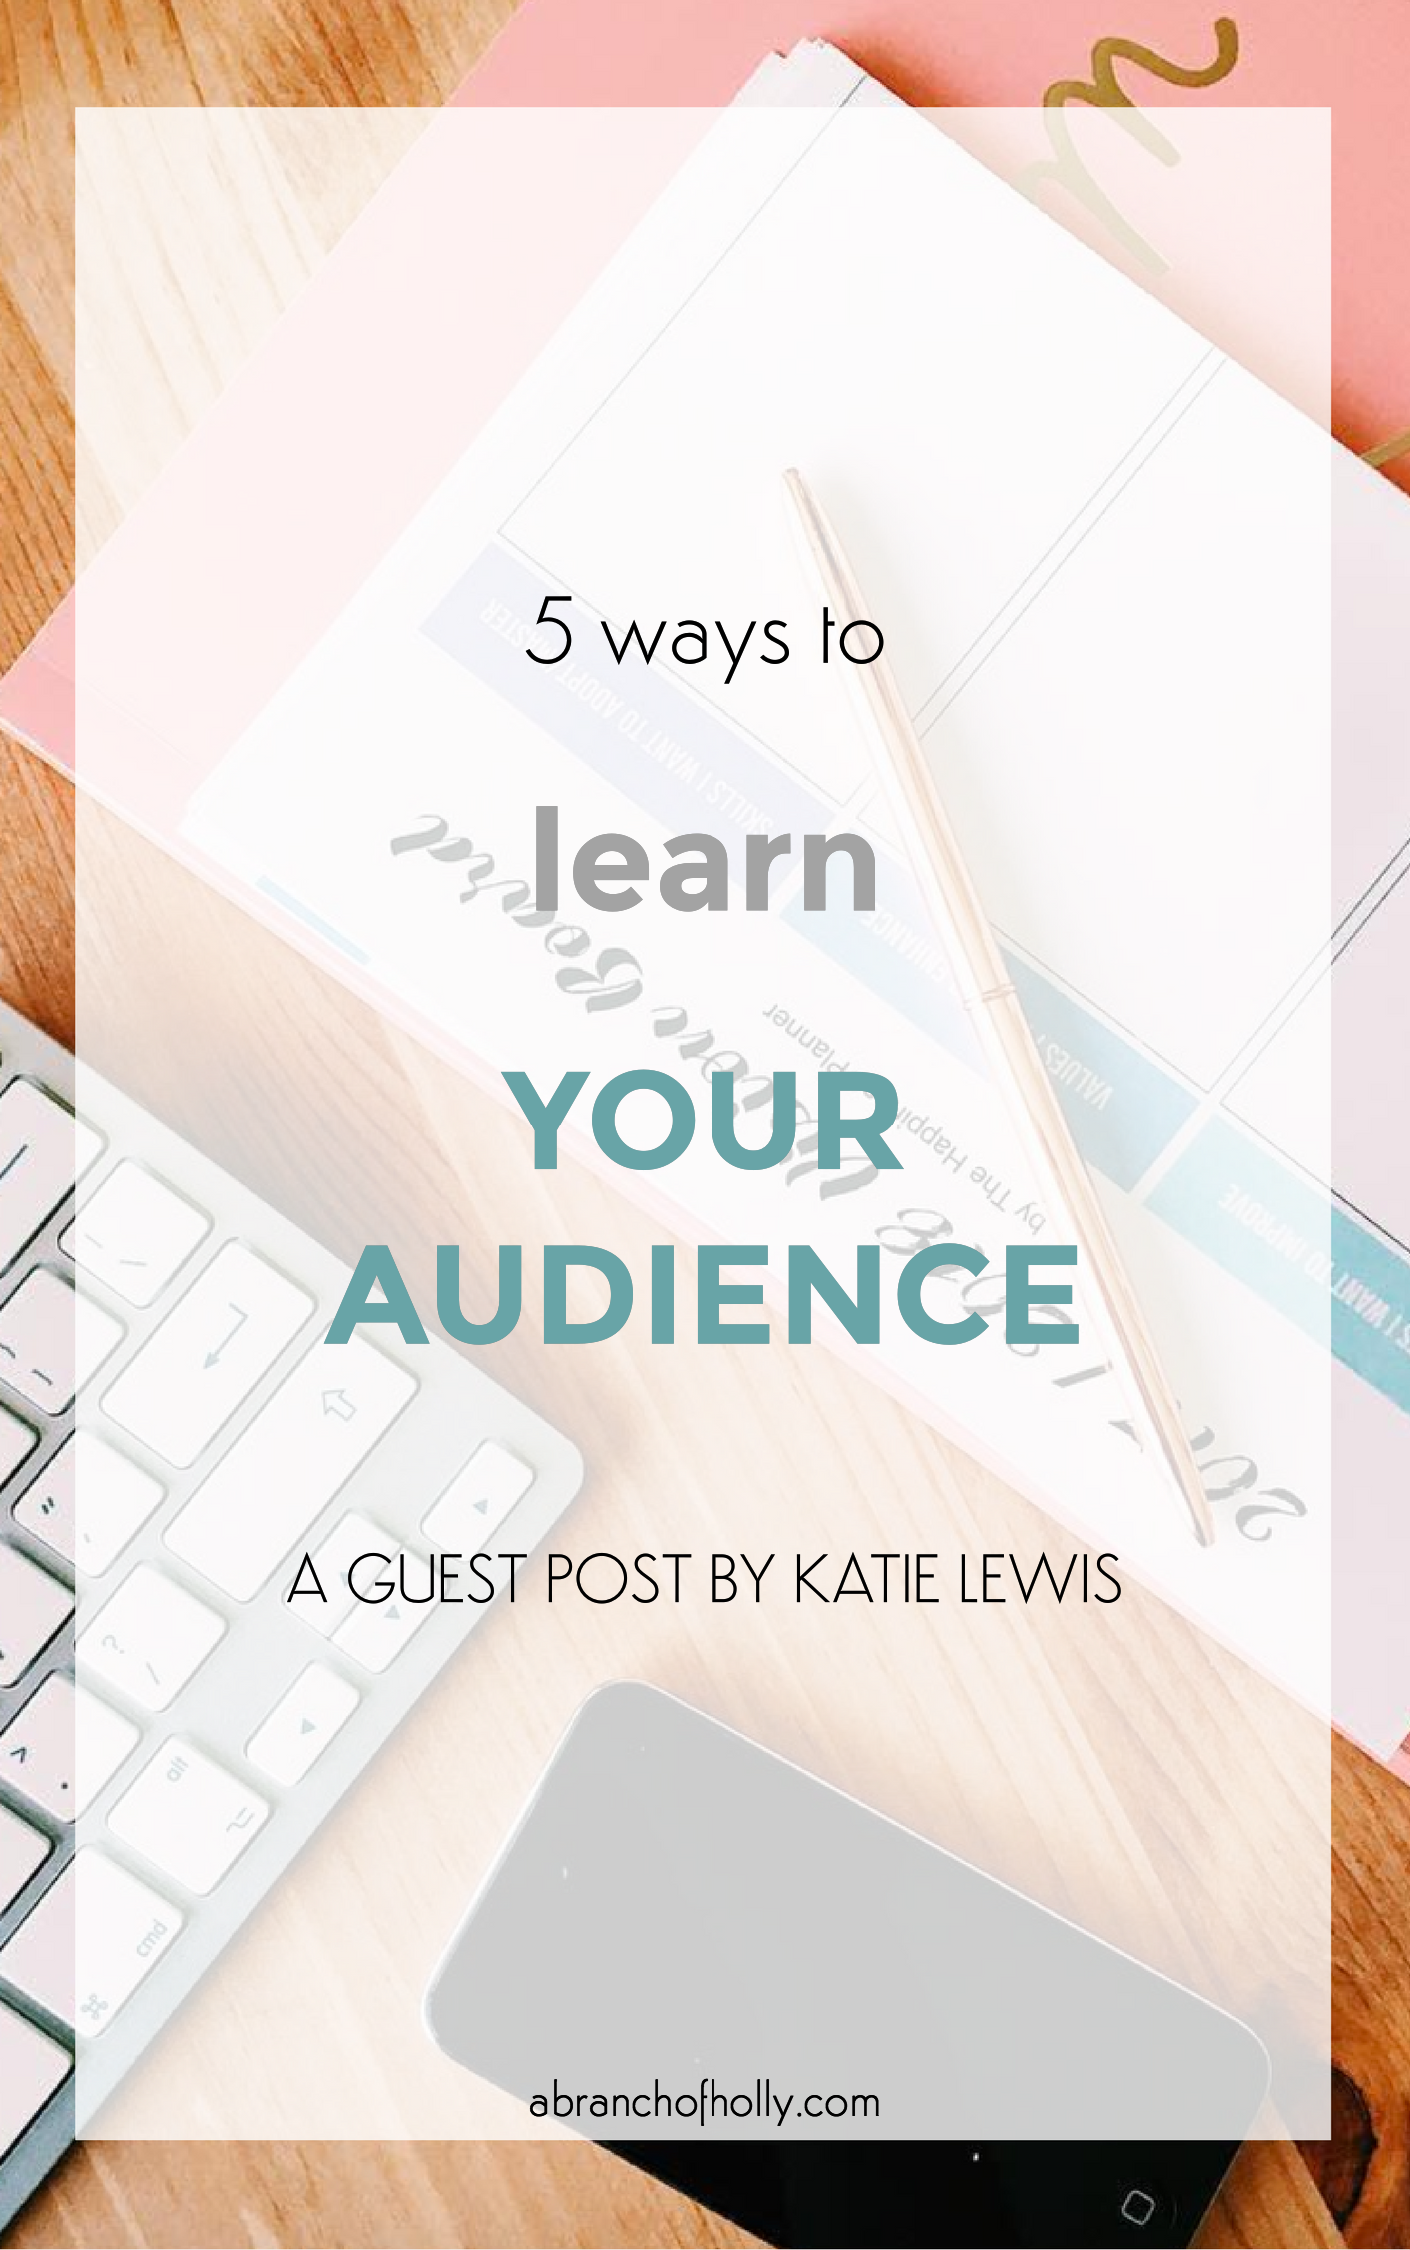 5 ways to learn your audience